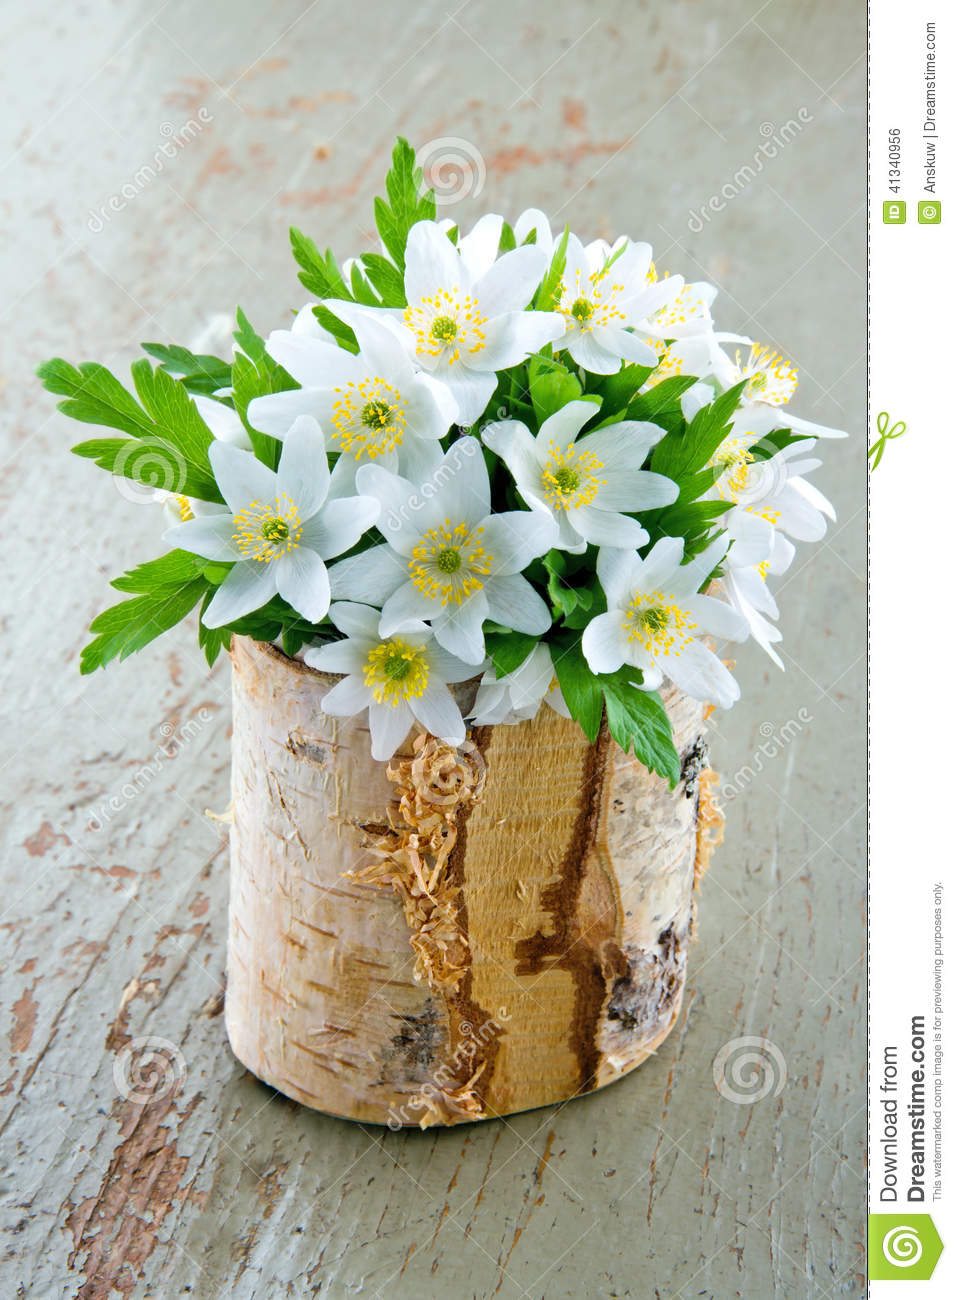 spring wild flowers in a wooden cup stock photo image of rustic